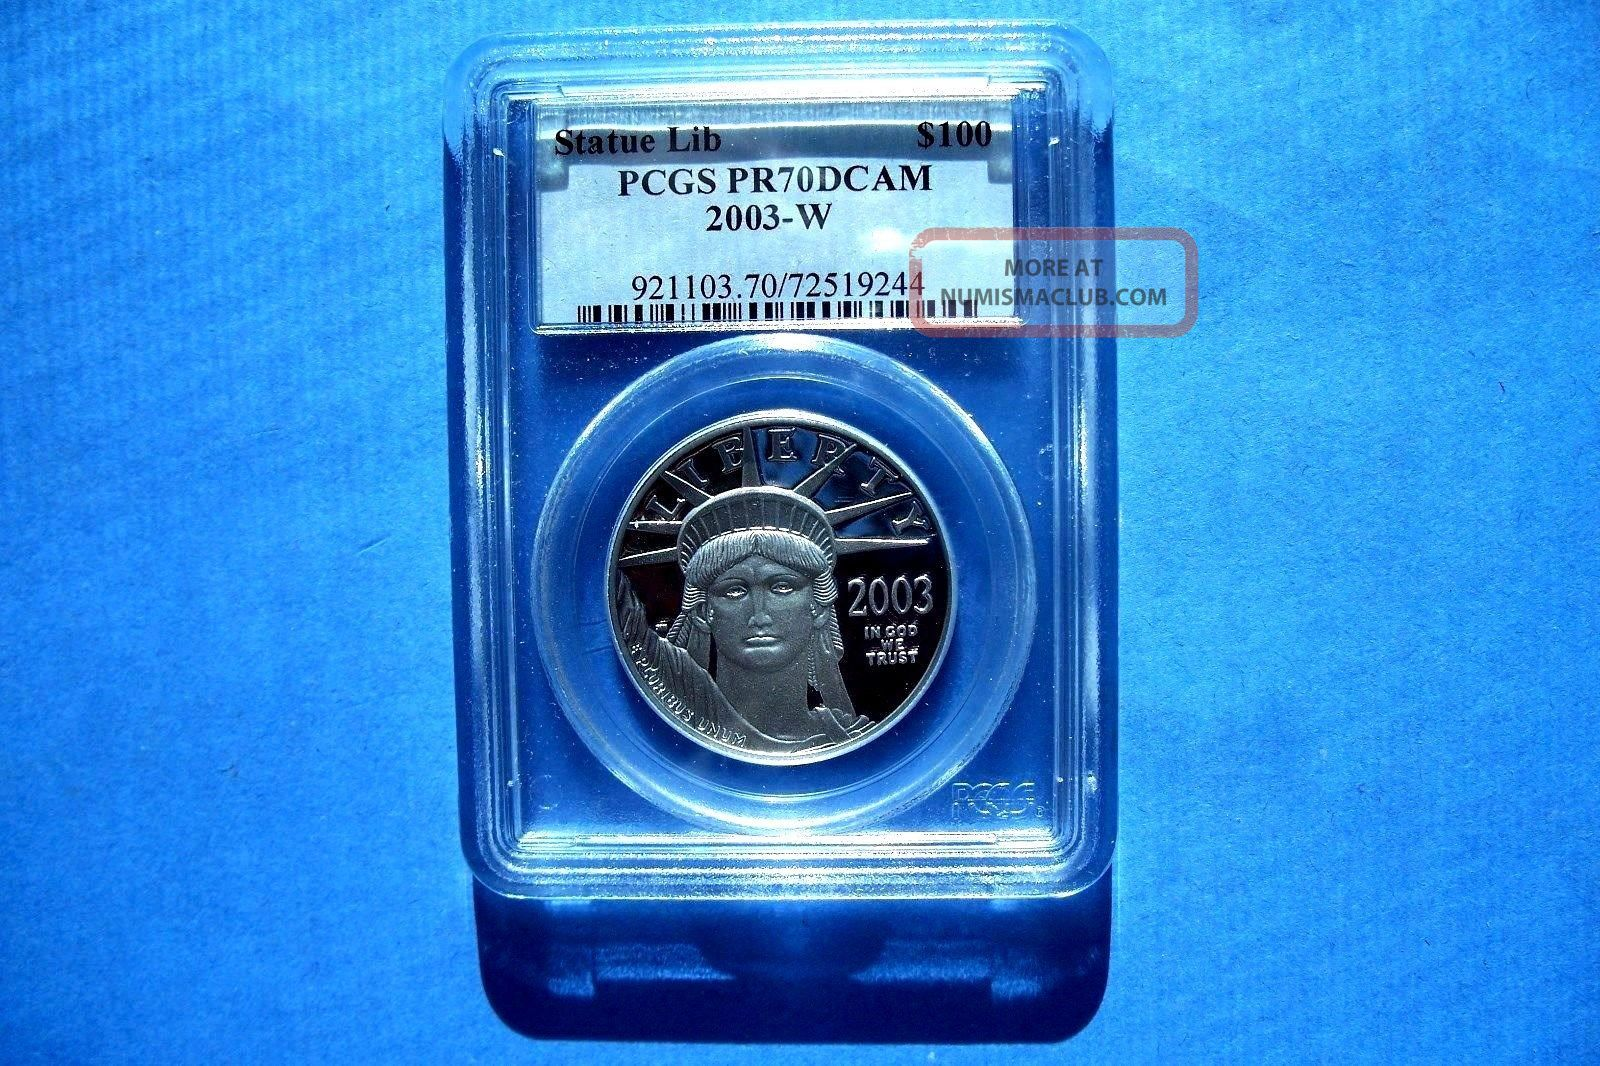 2003 - W $100 Platinum Pcgs Pr70dcam Statue Of Lberty Great Coin Platinum photo